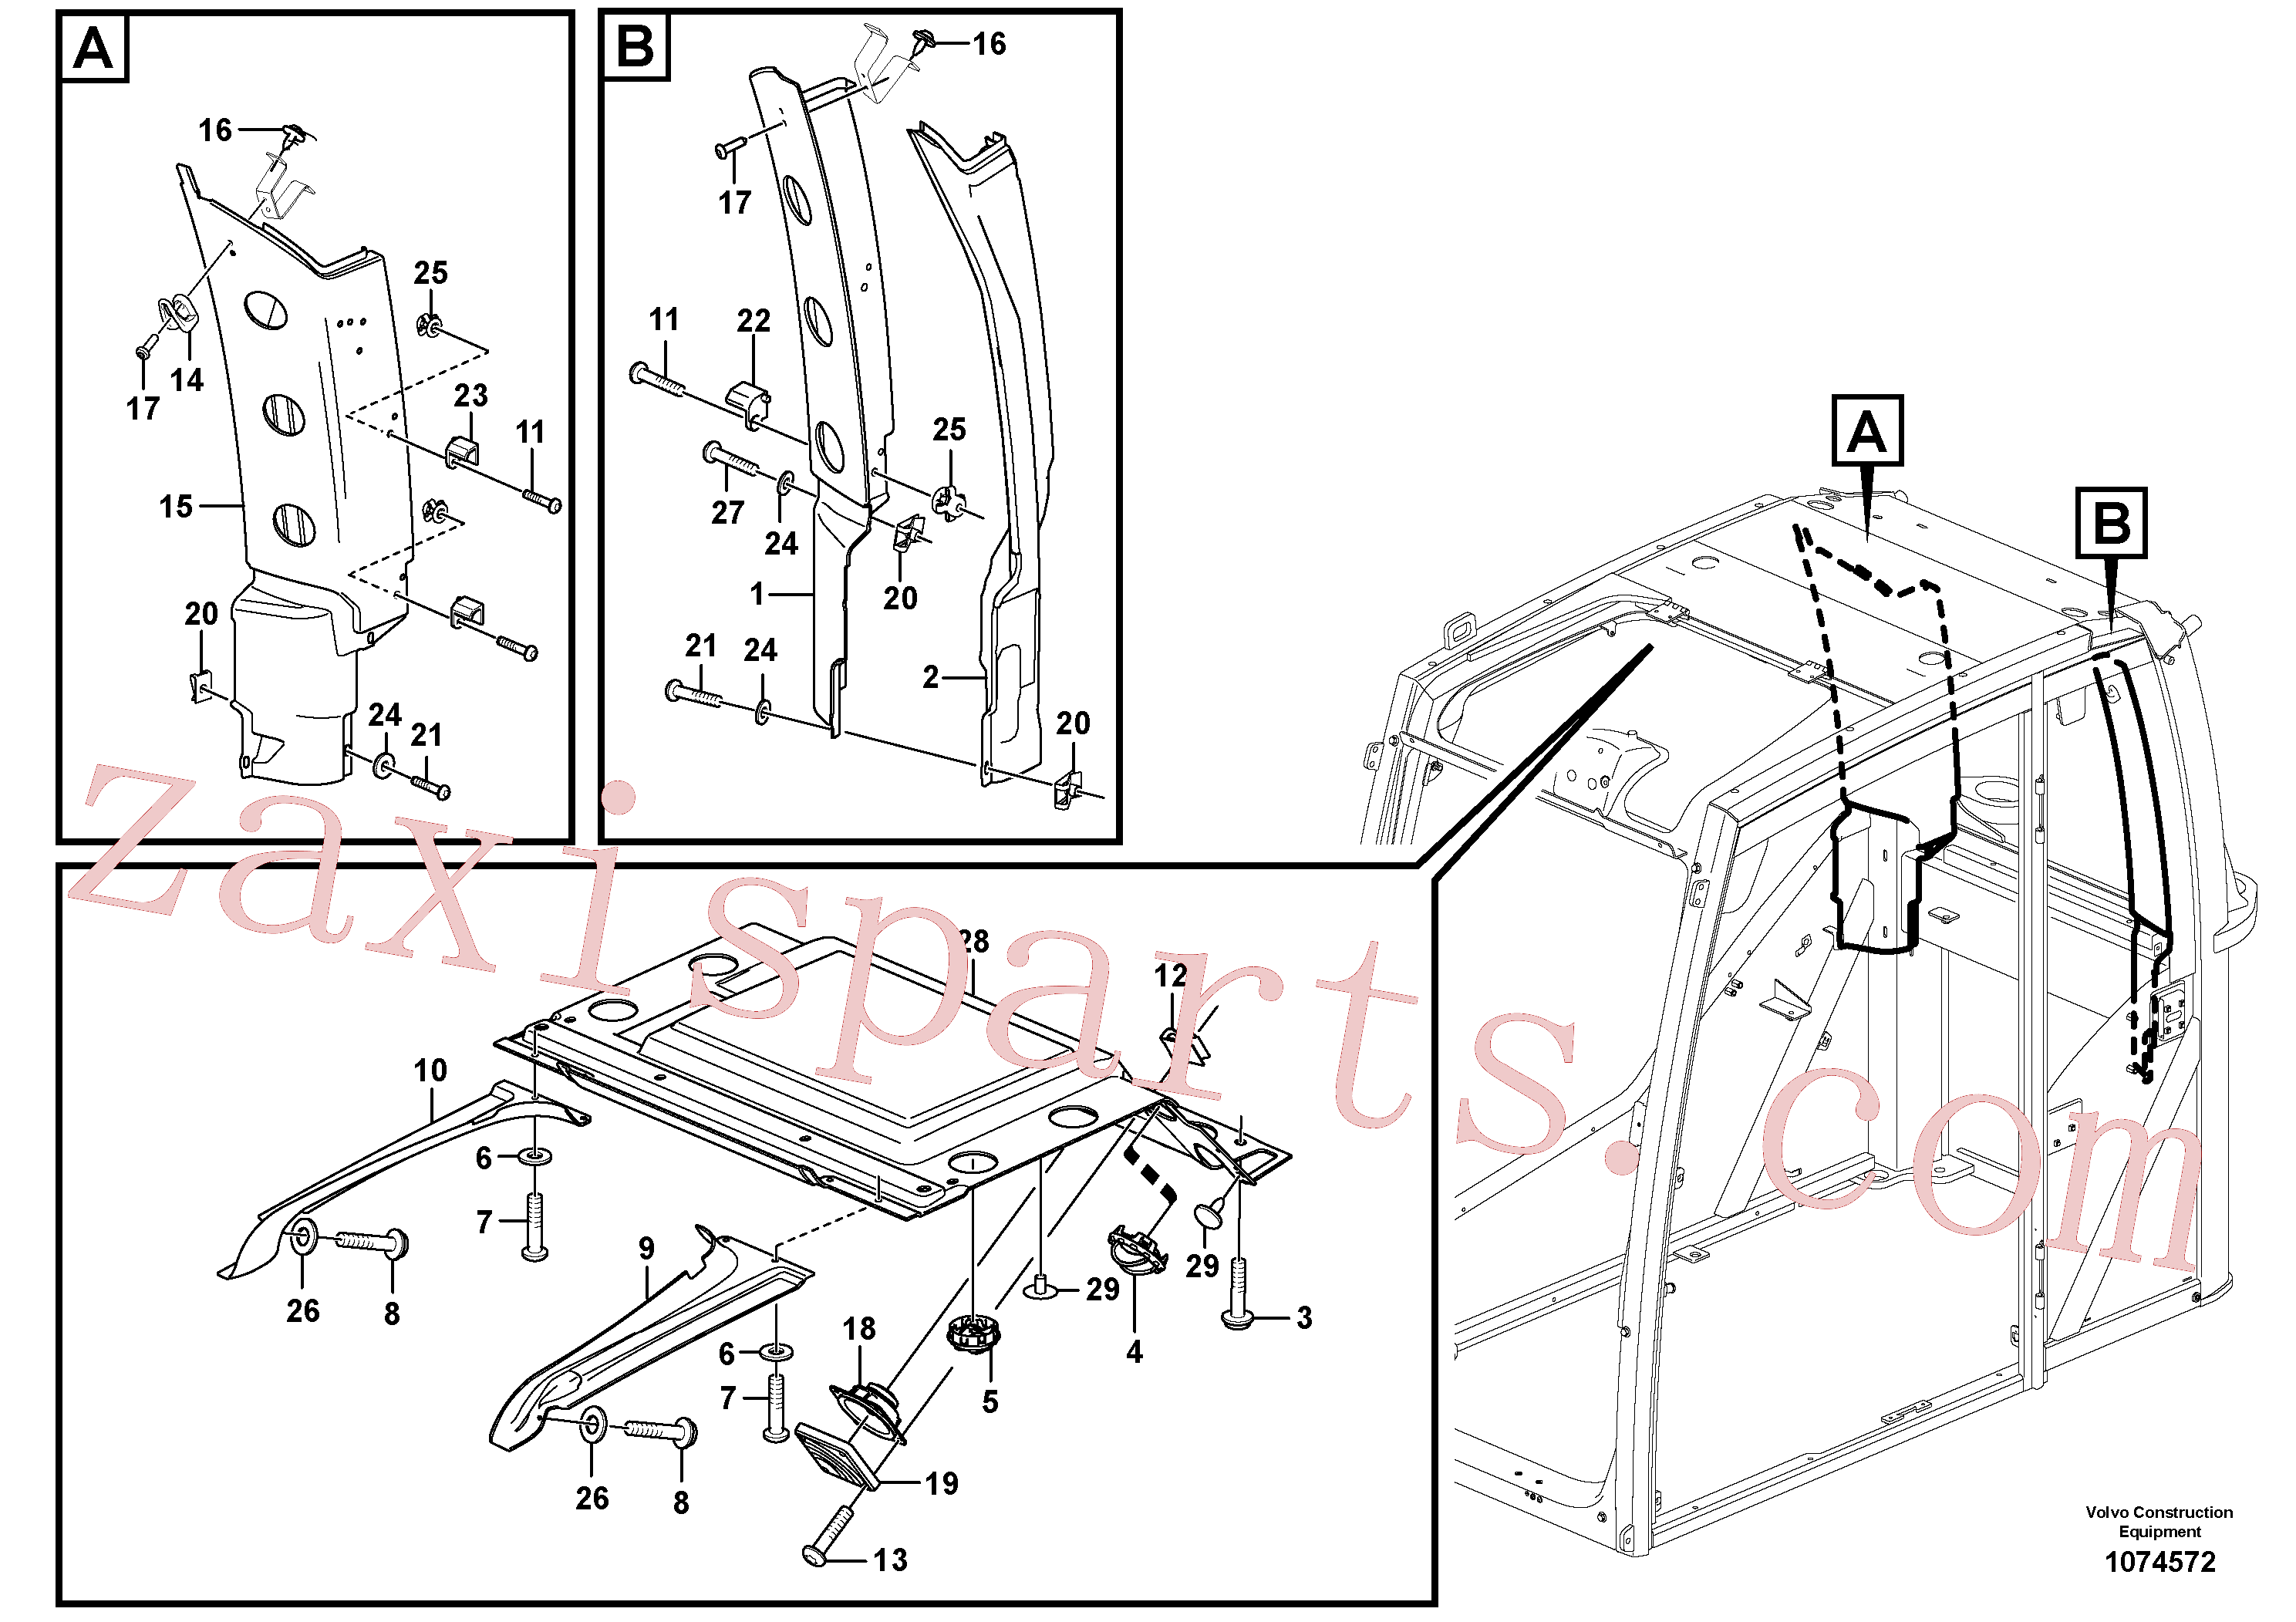 VOE4945078 for Volvo Interior components(1074572 assembly)